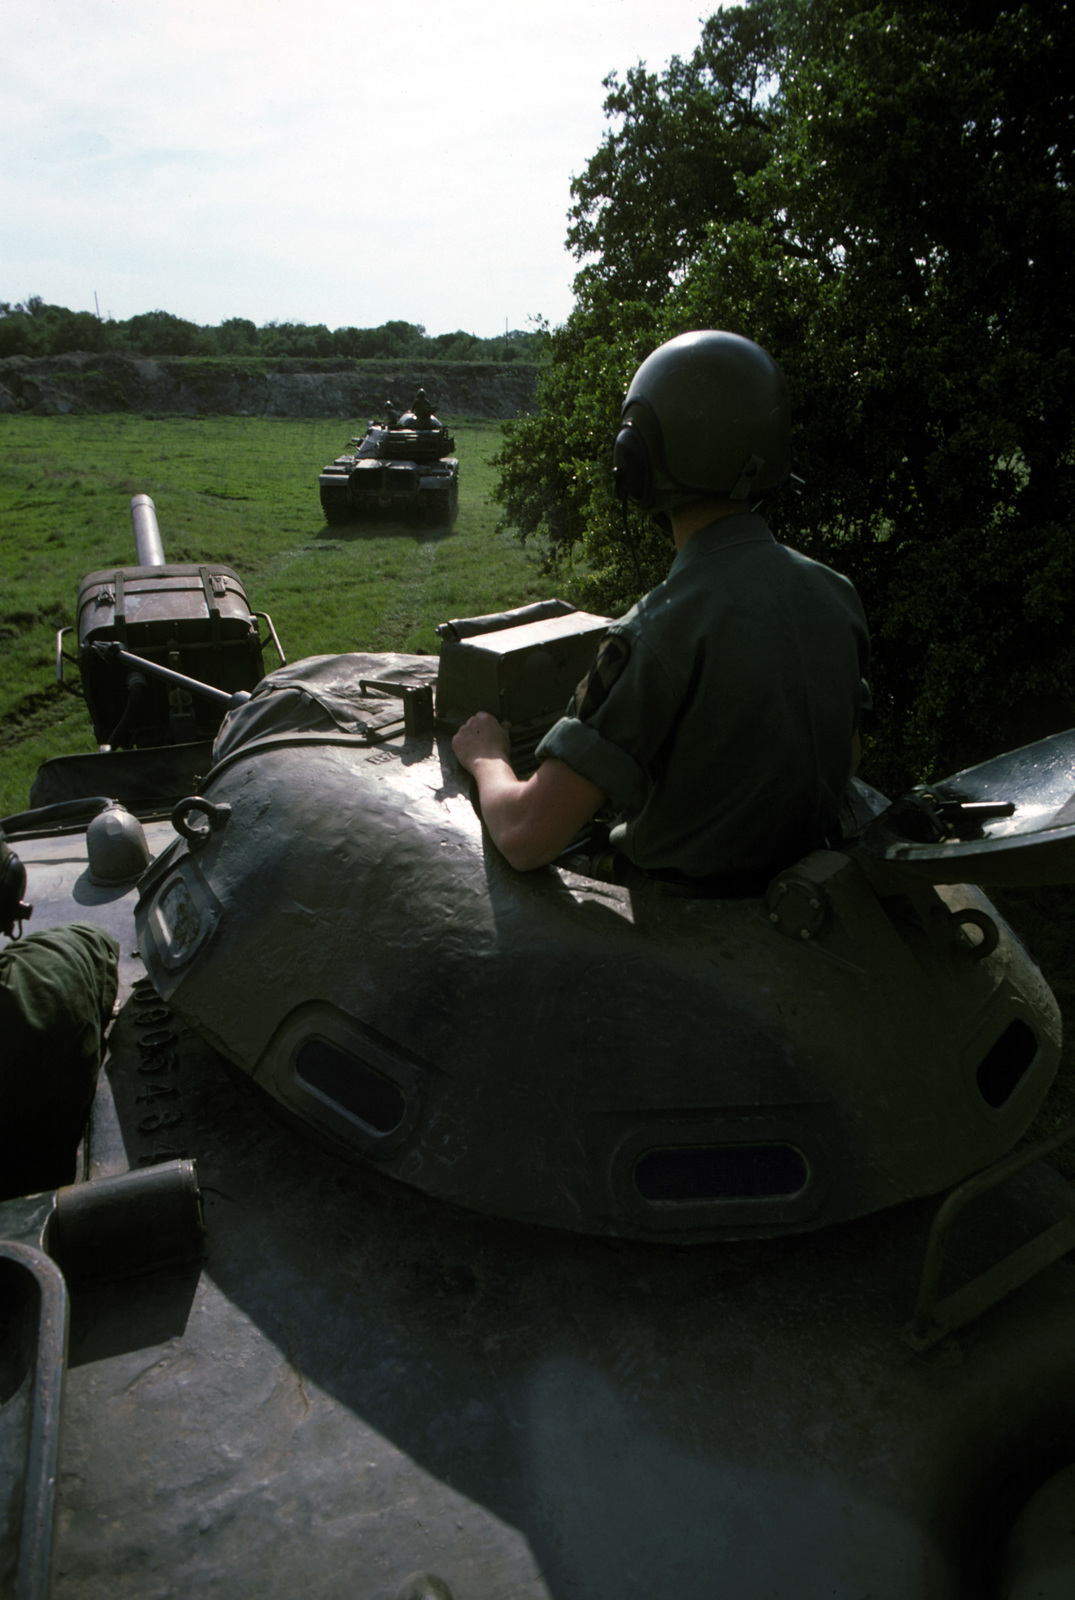 A US Army tank commander looks out from the cupola of his M60 main battle tank during a field training exercise